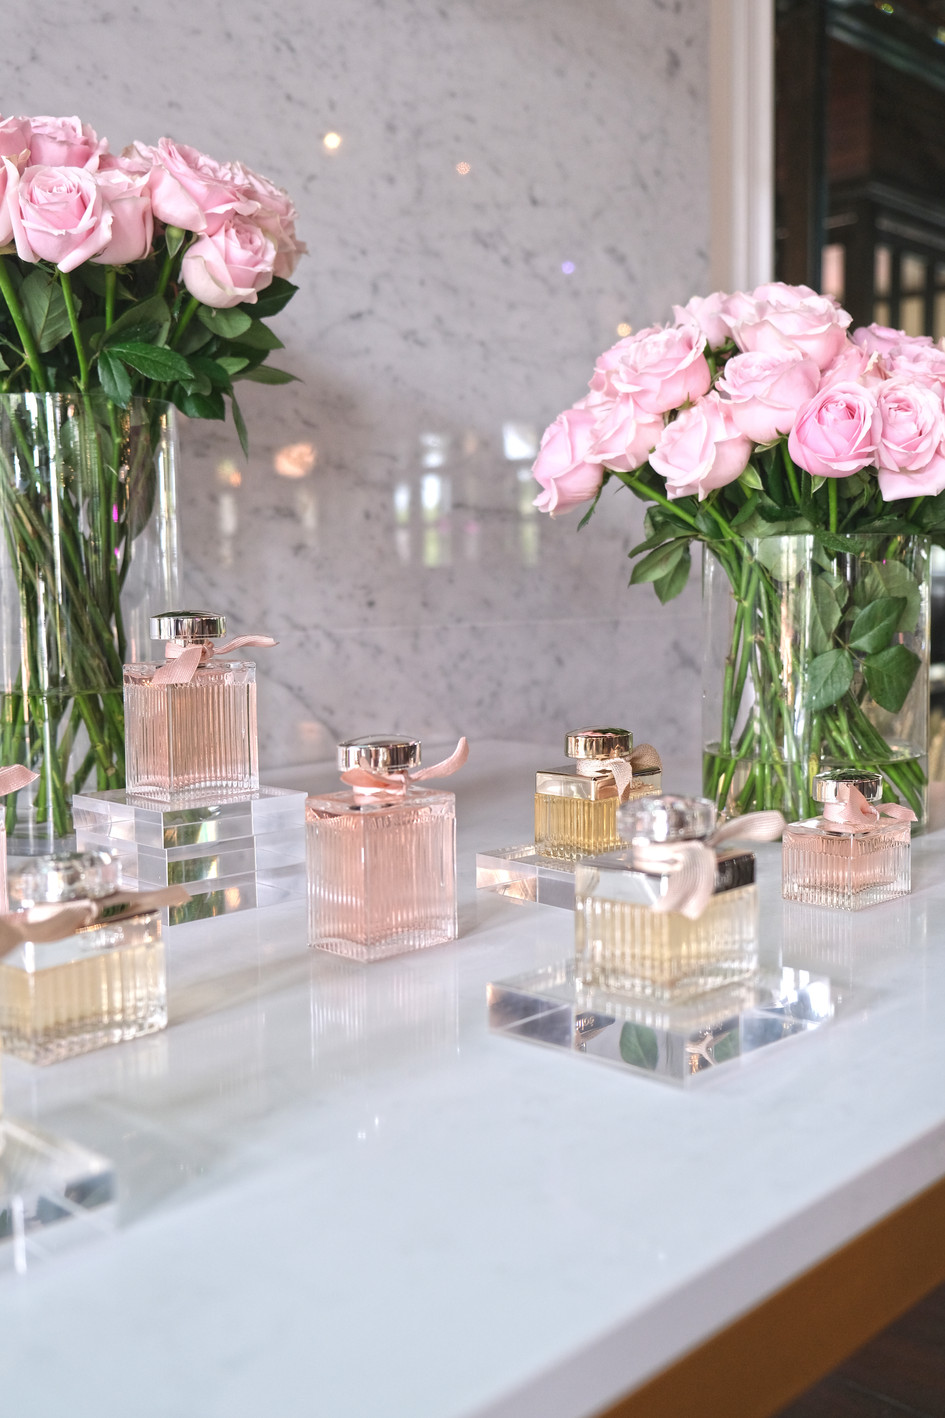 CHLOÉ FRAGRANCE